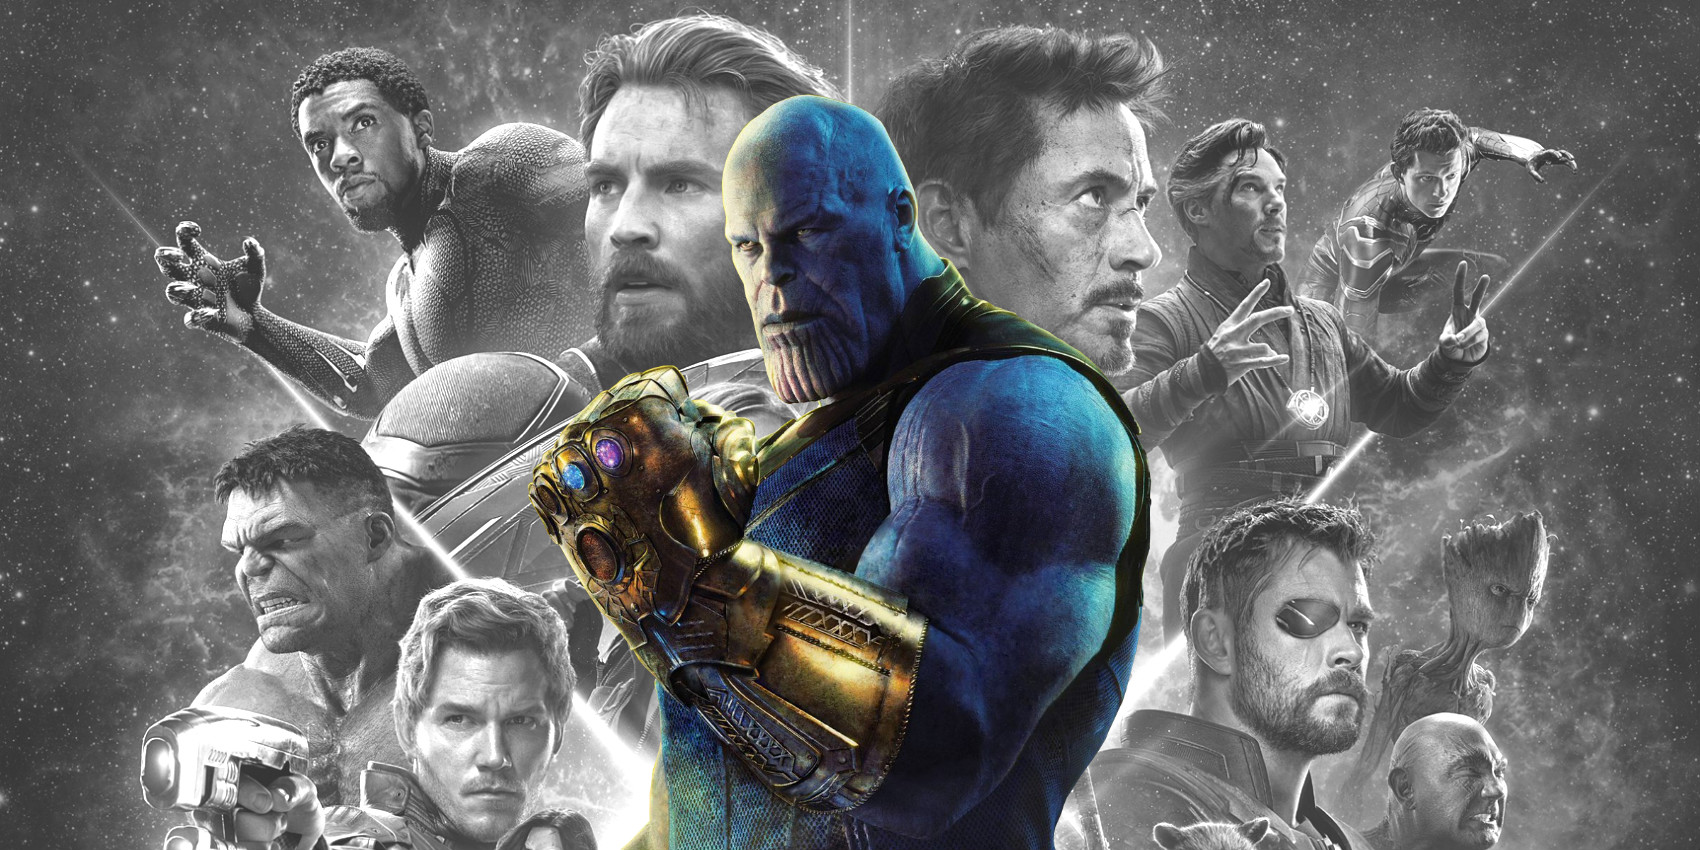 SPOILERS: Every Death in Avengers: Infinity War